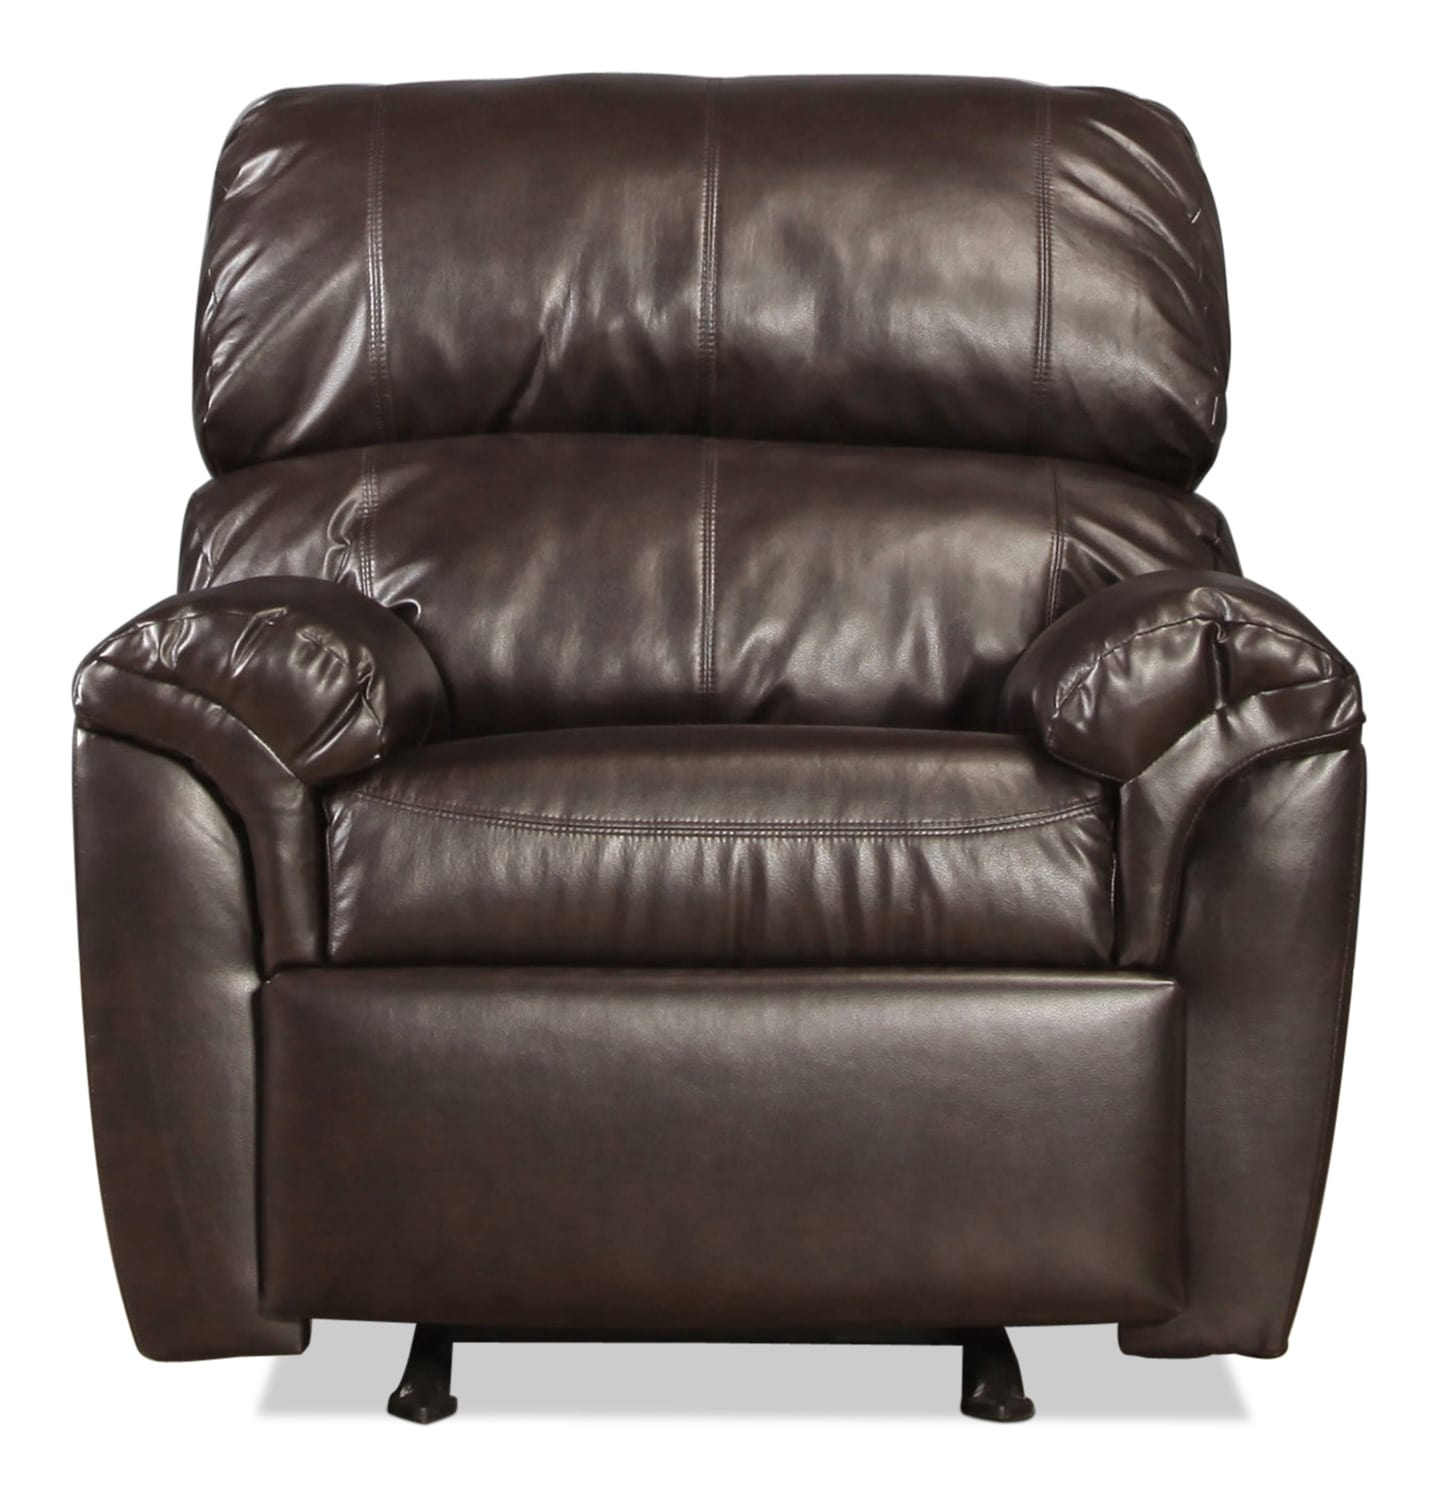 Living Room Furniture - Westminster Recliner - Walnut